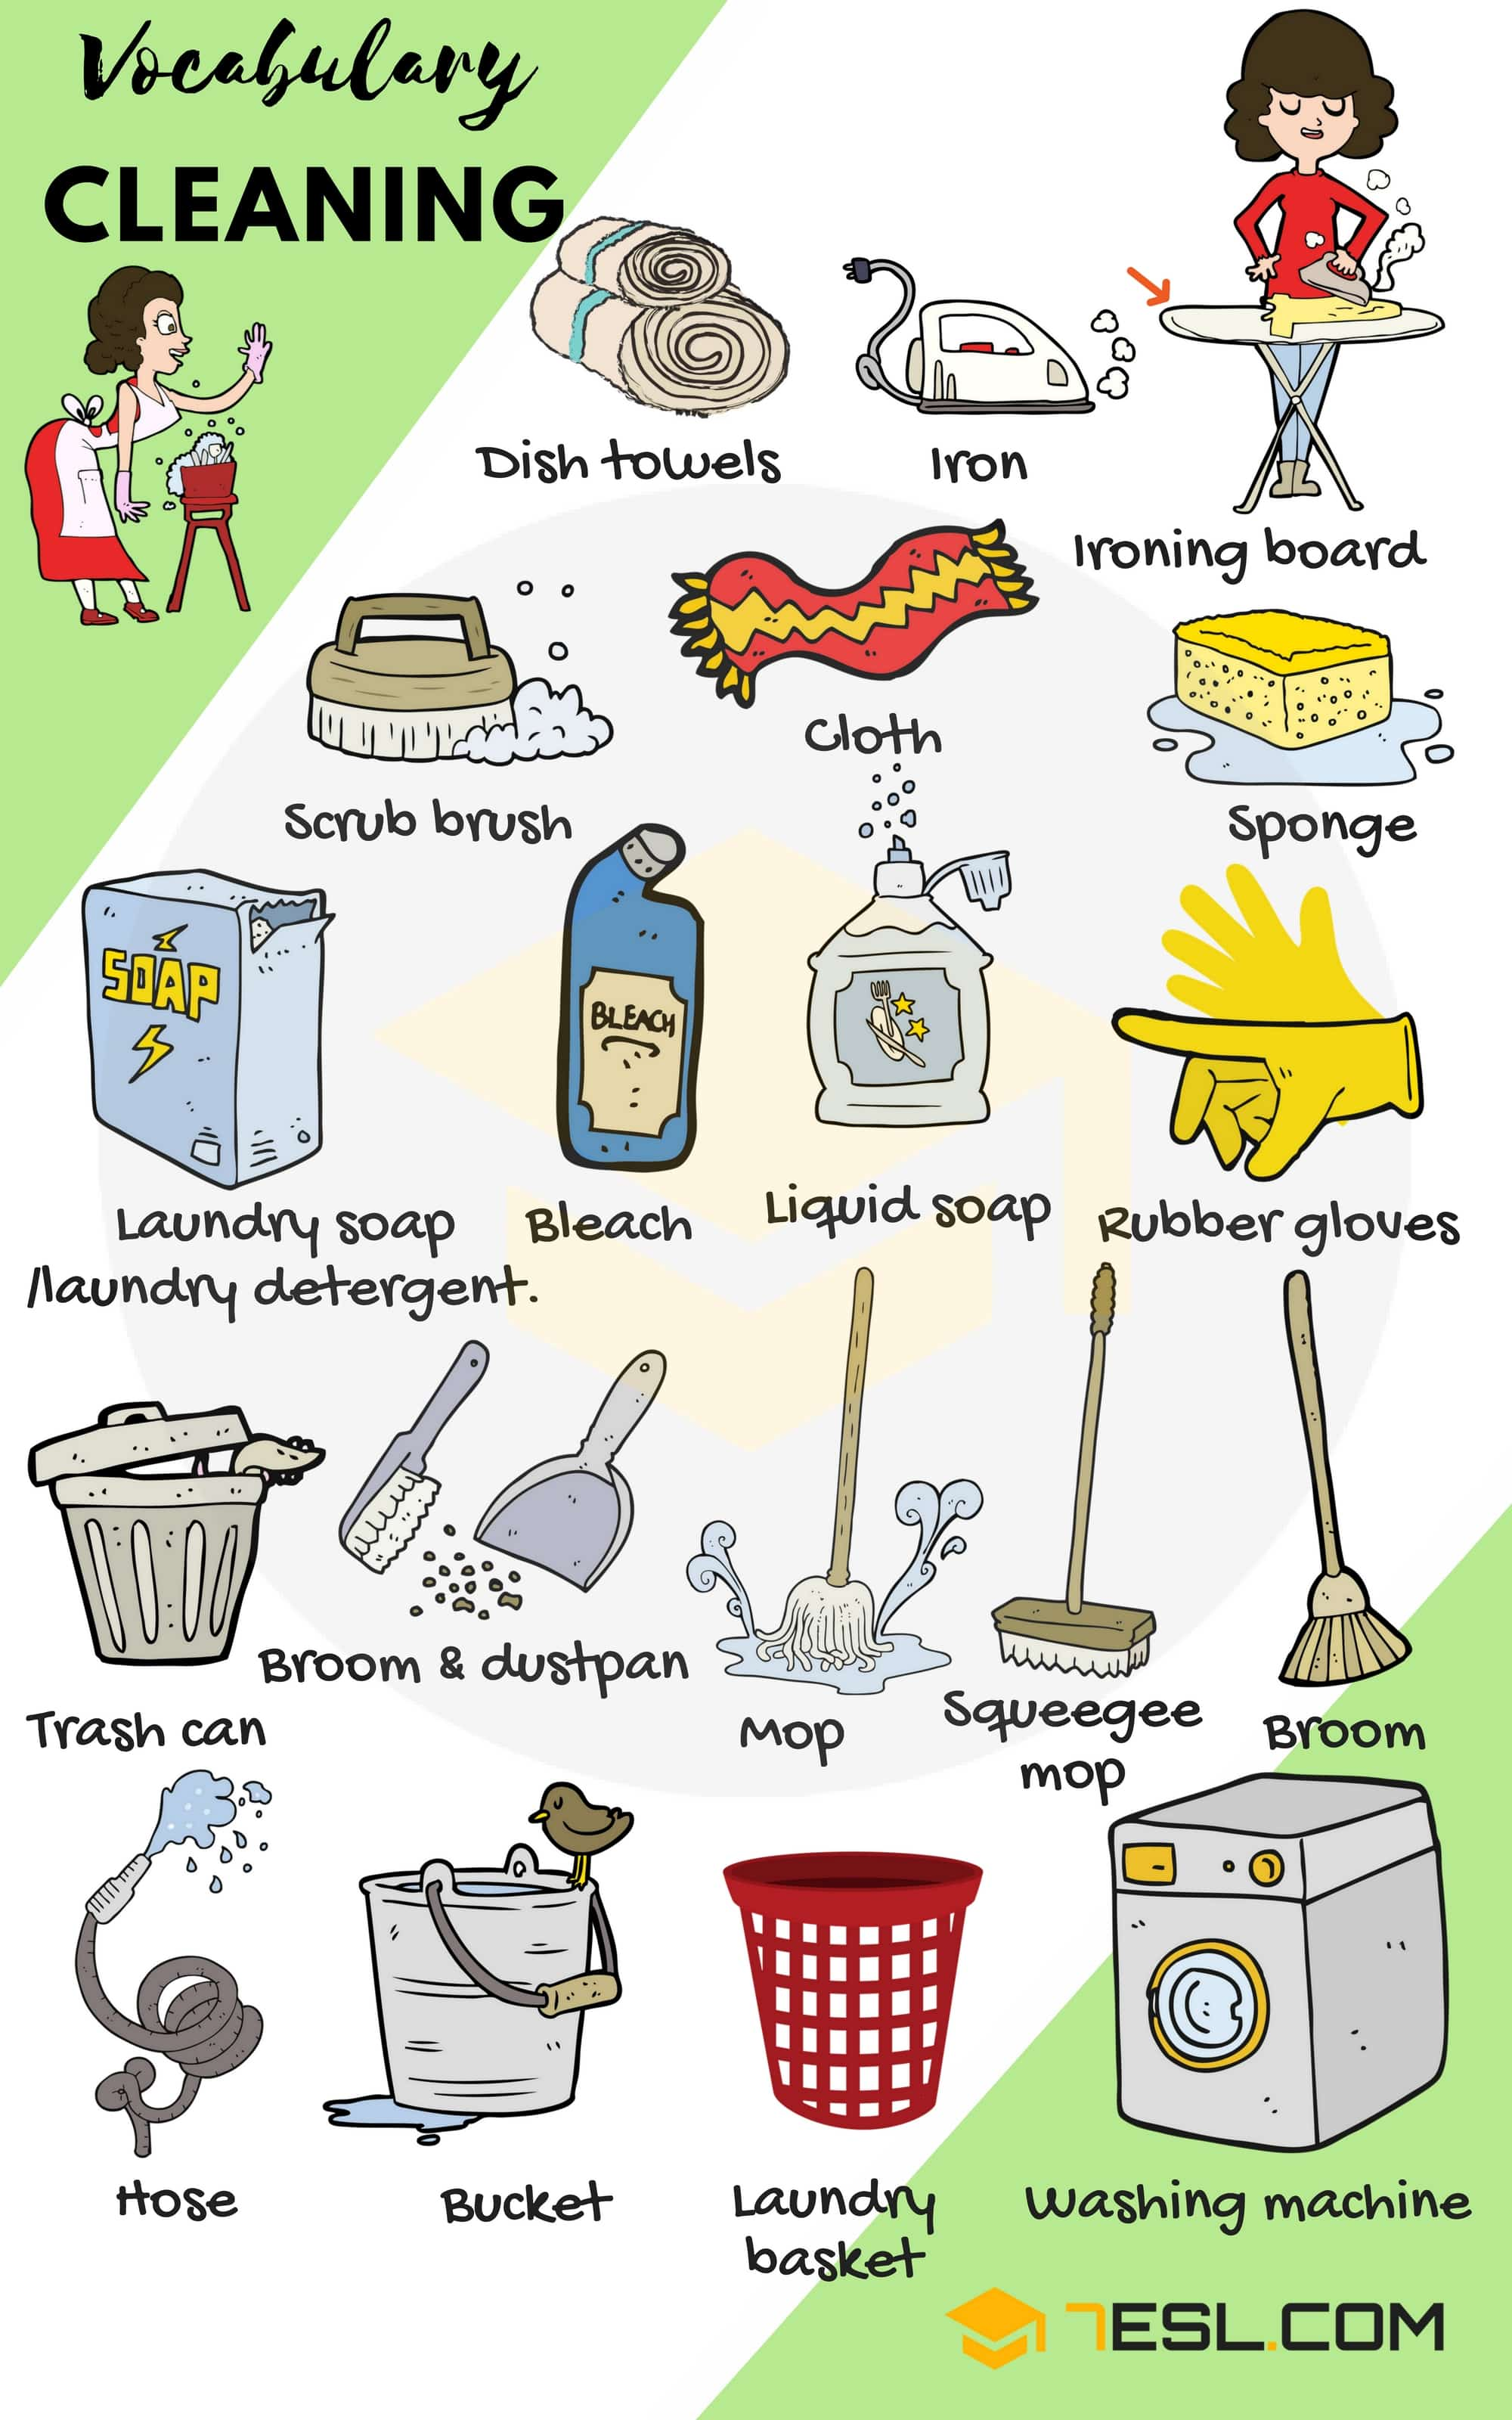 House Cleaning and Laundry Vocabulary in English